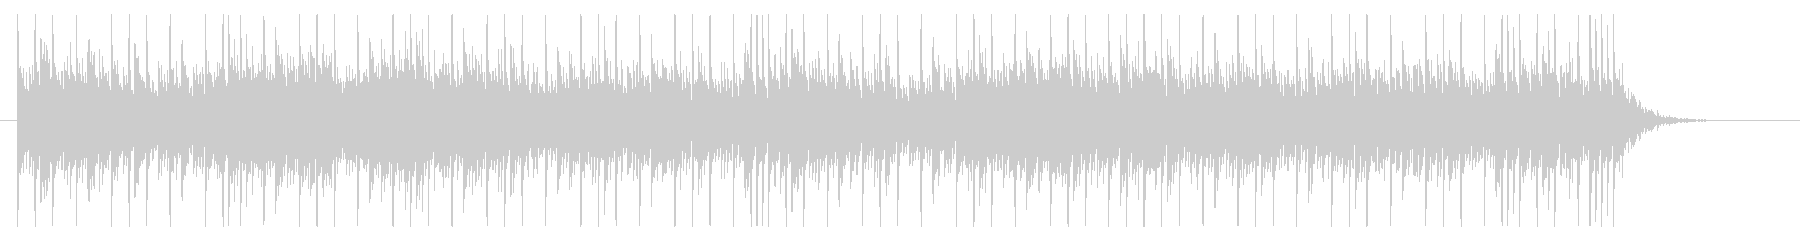 Glittering and mysterious and mysterious BGM's unreproduced waveform